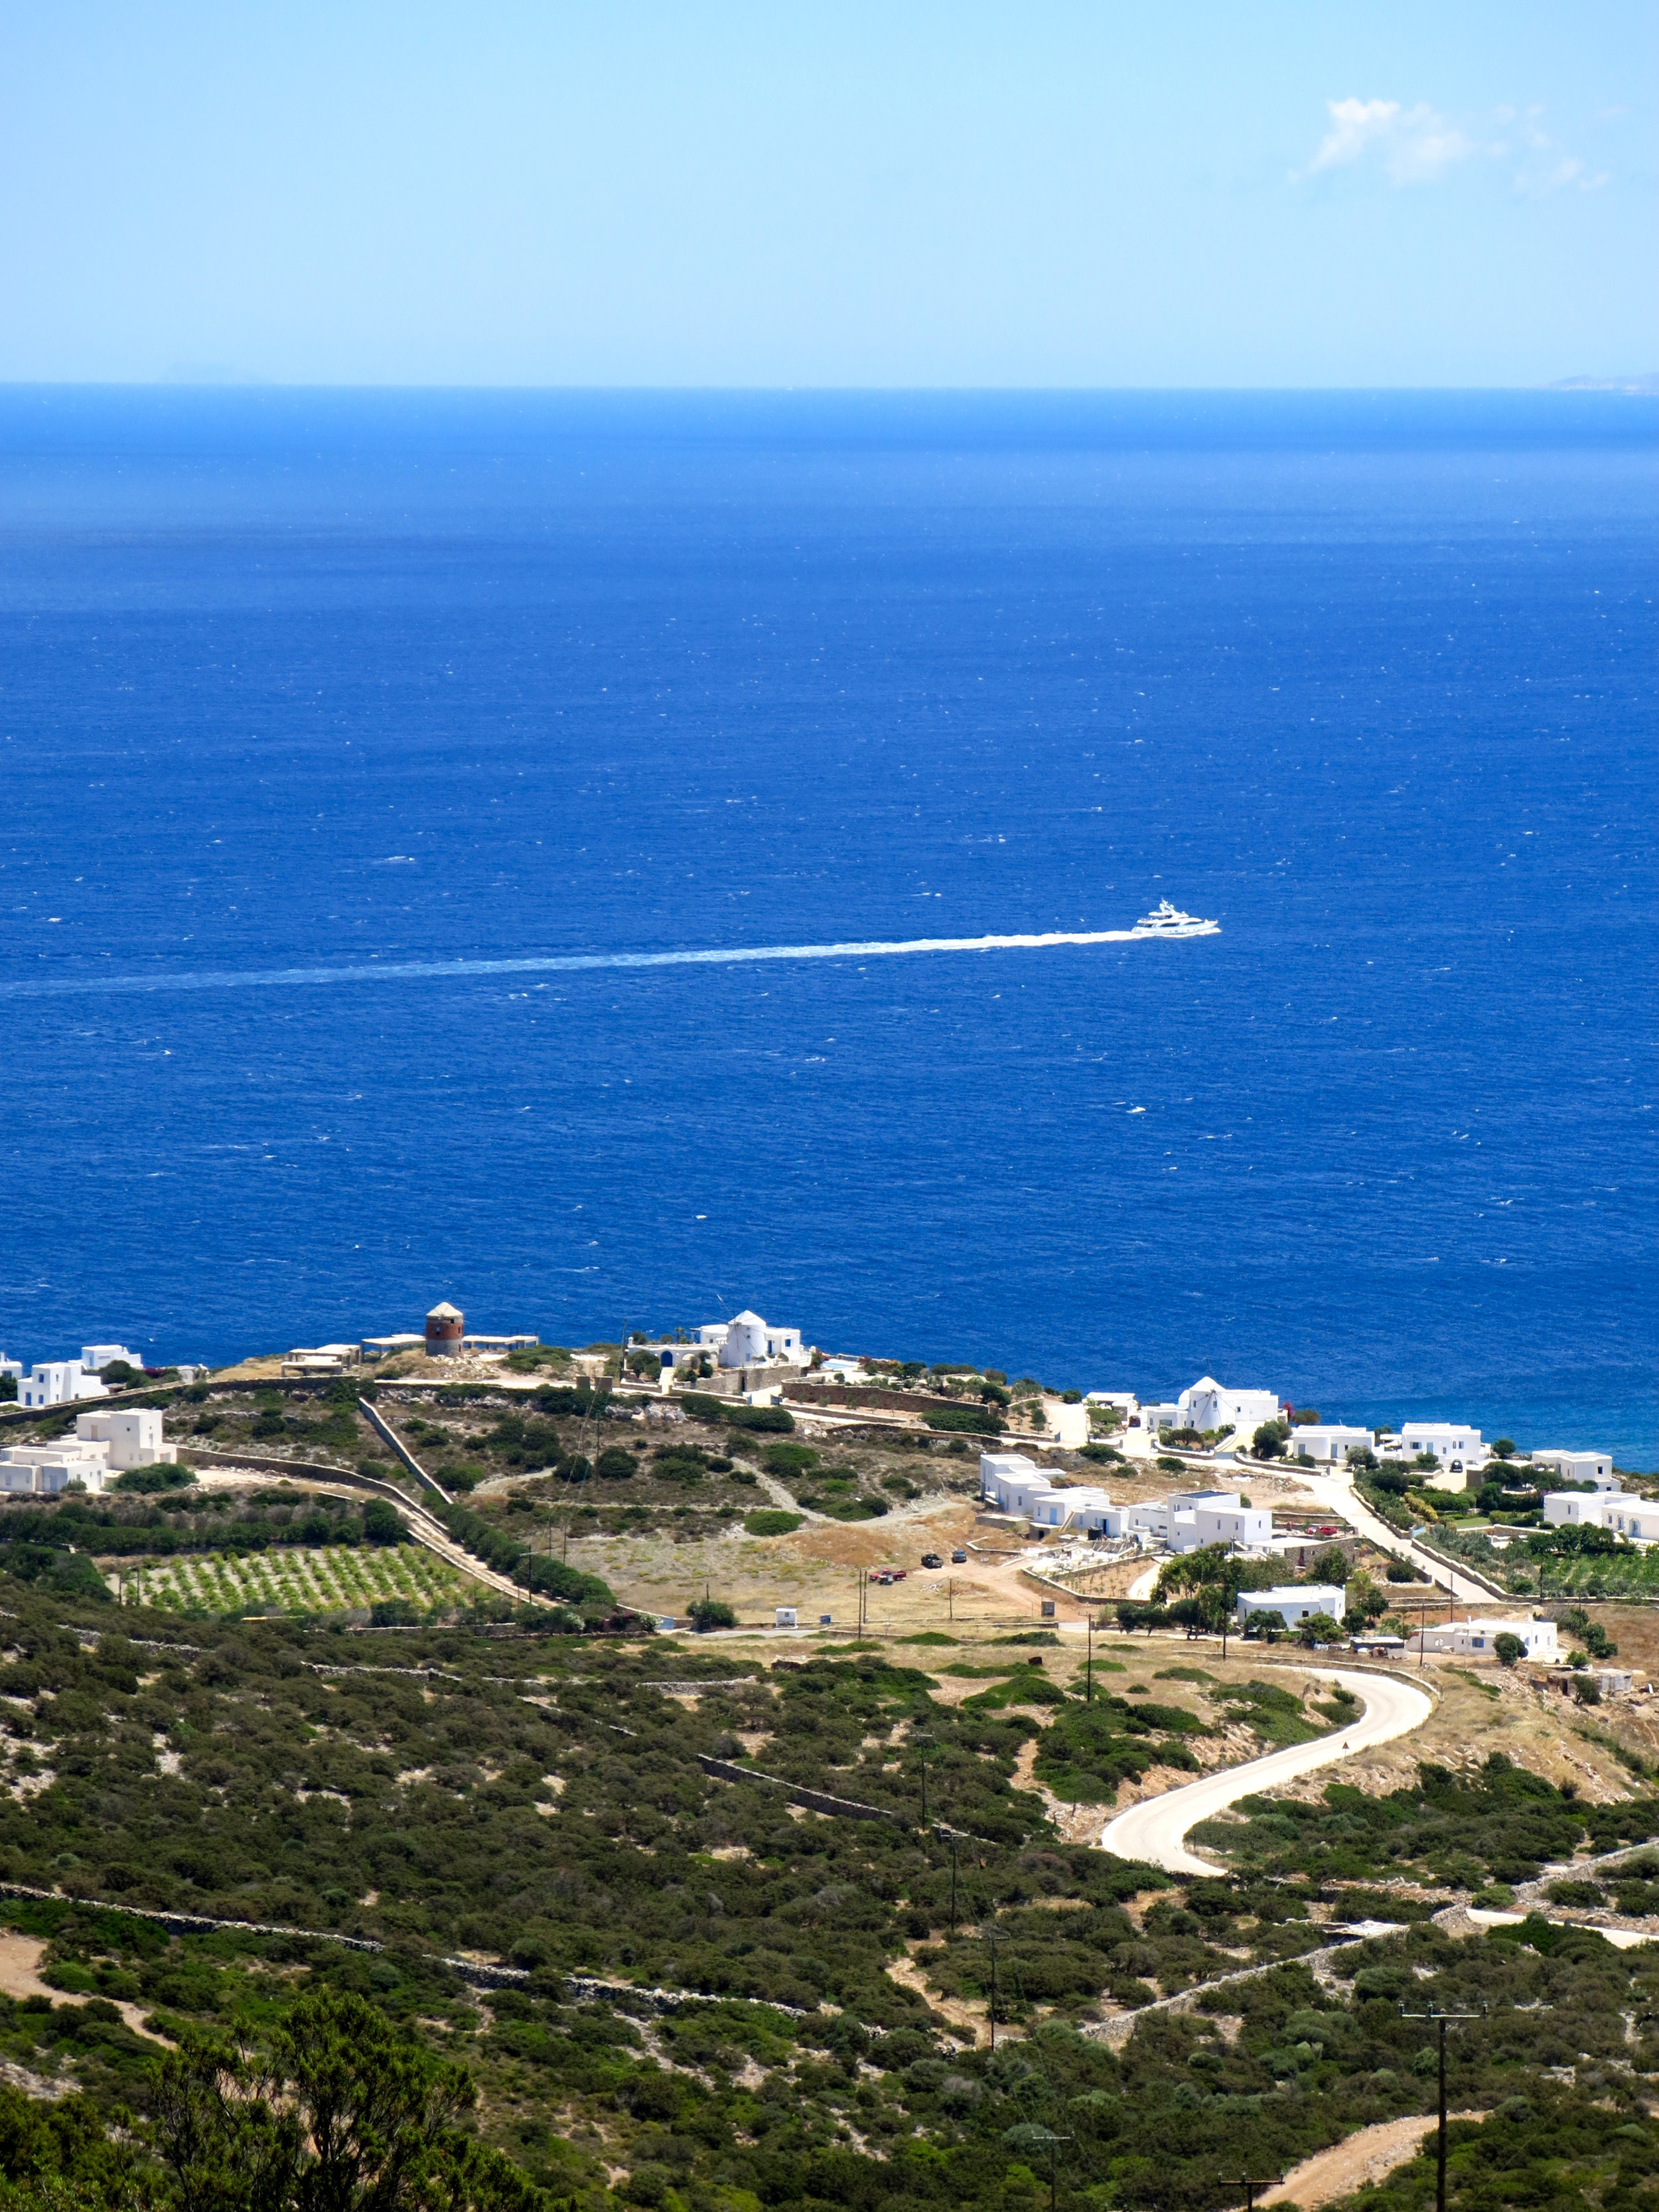 Scattered villas along the quiet coastline of Antiparos